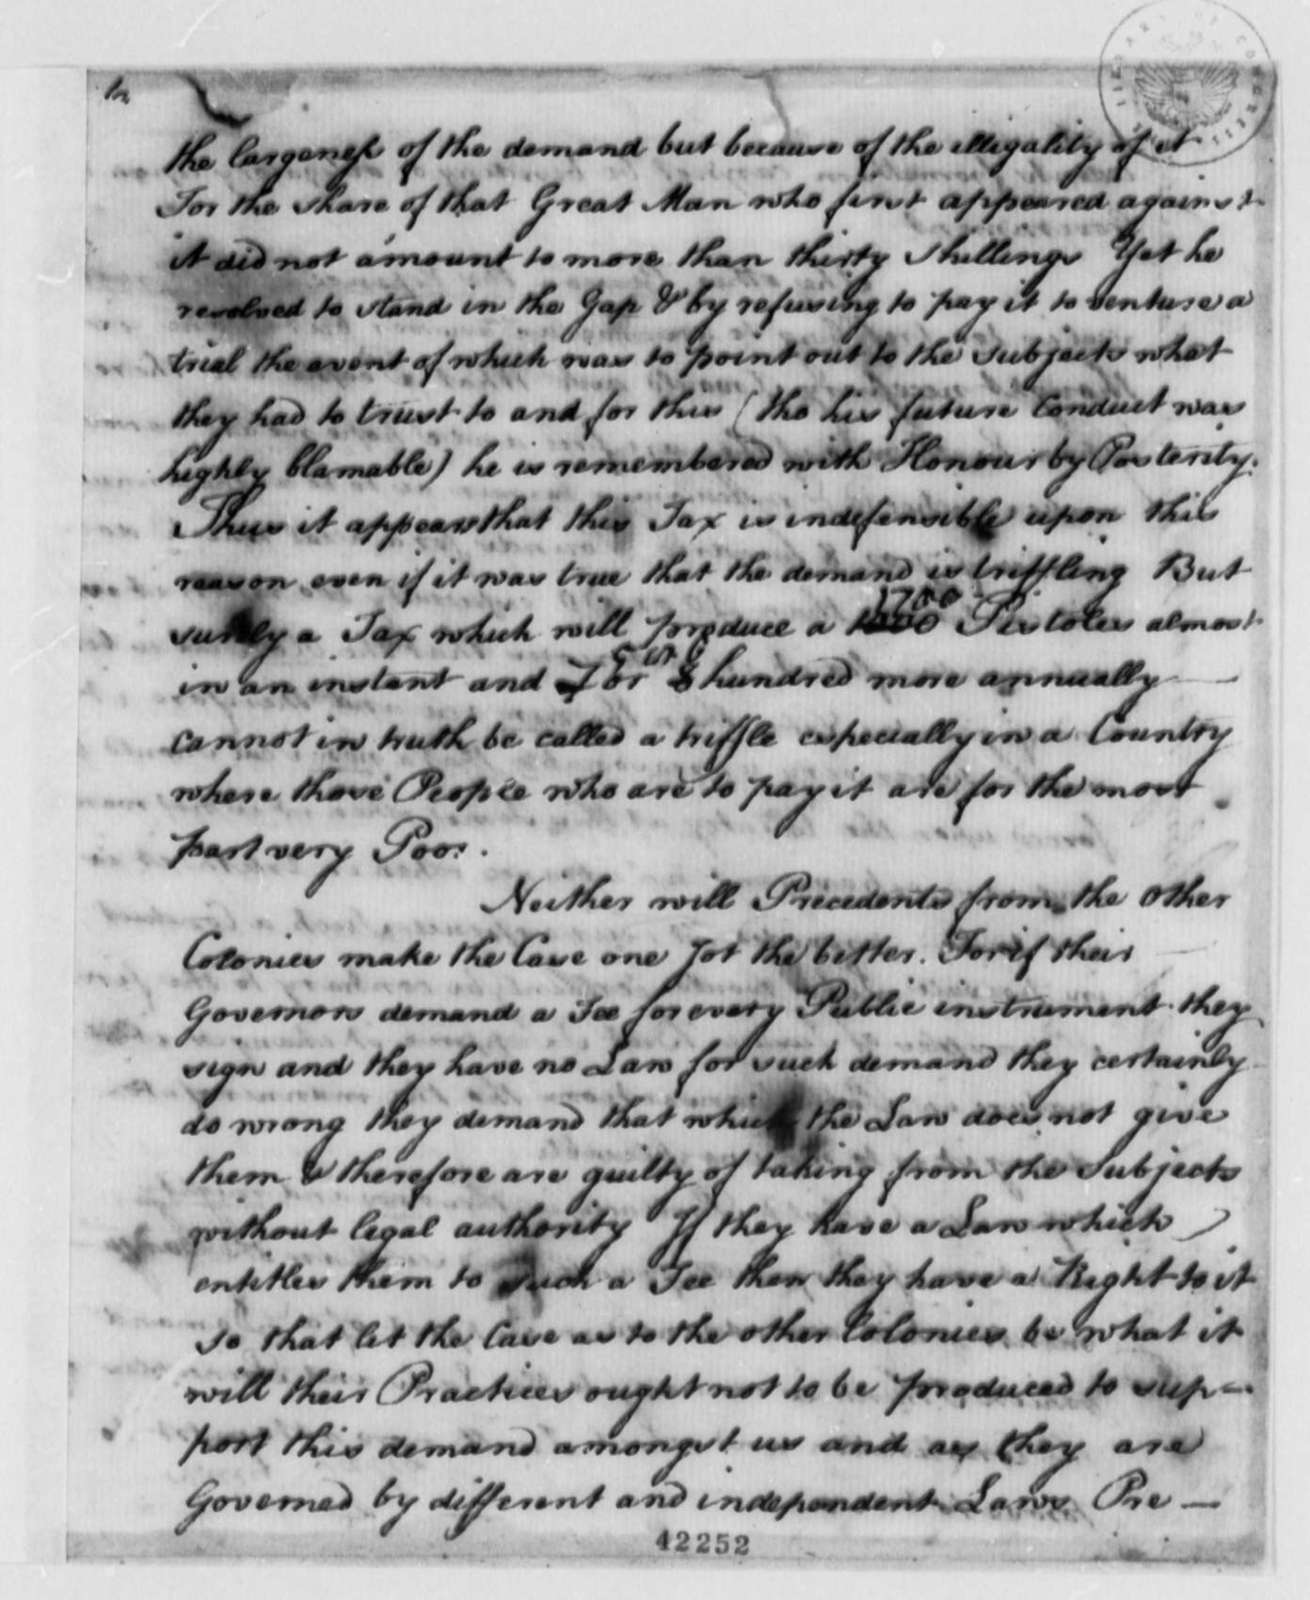 Richard Bland, 1753, Draft Statement on Pistole Fee and Land Patents